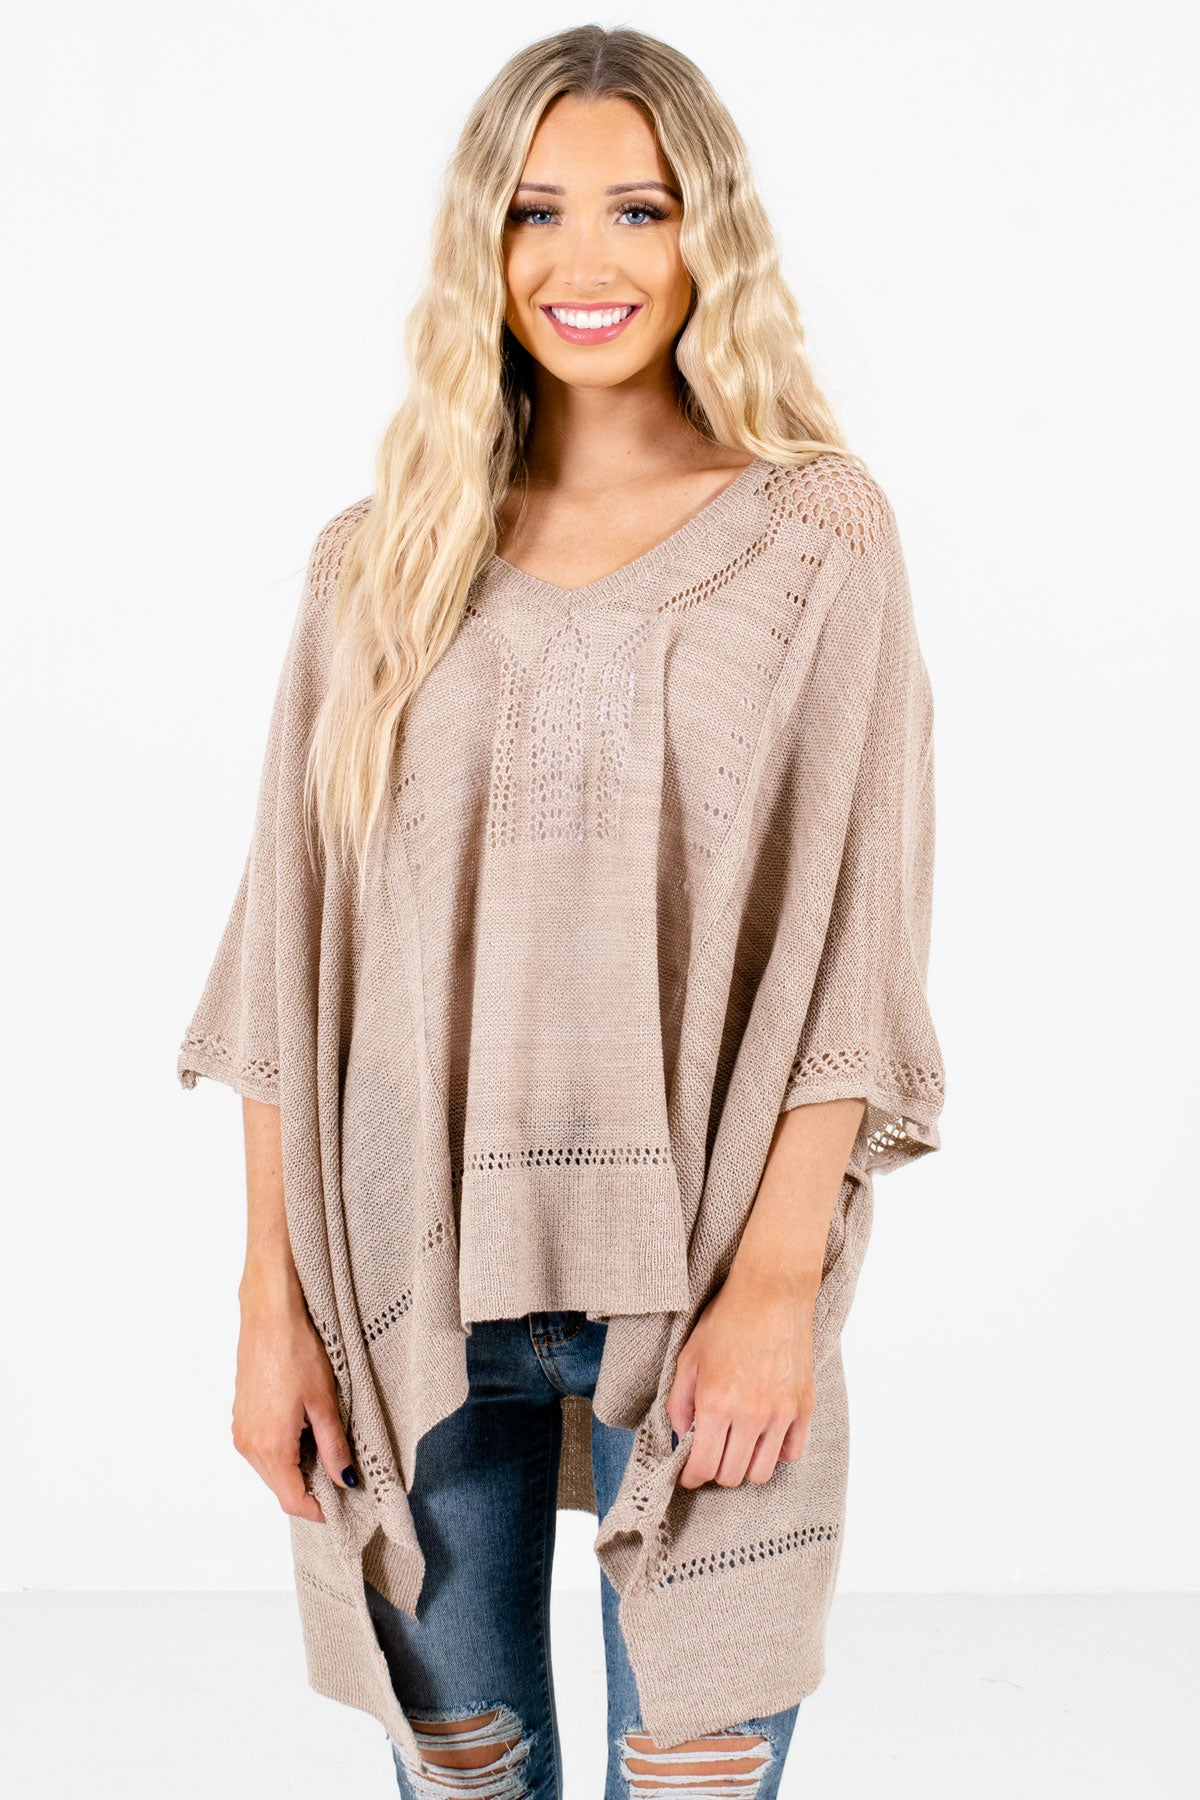 Taupe Brown Lightweight Knit Material Boutique Ponchos for Women